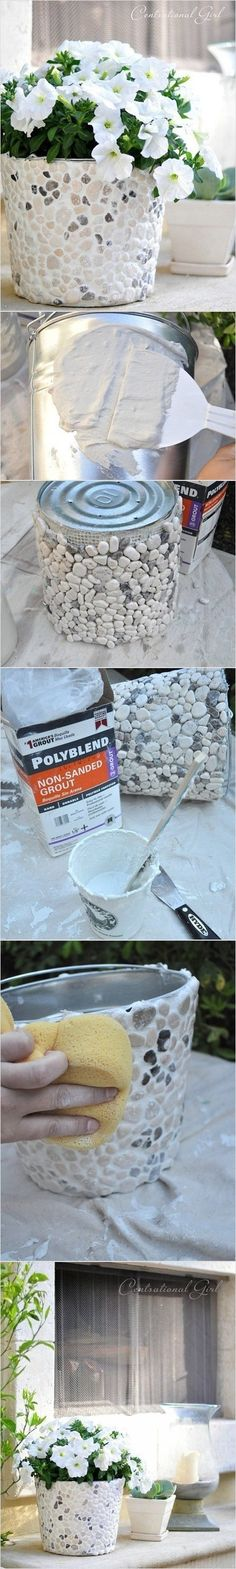 DIY mosaic planter...can think of different containers that this would look great on!